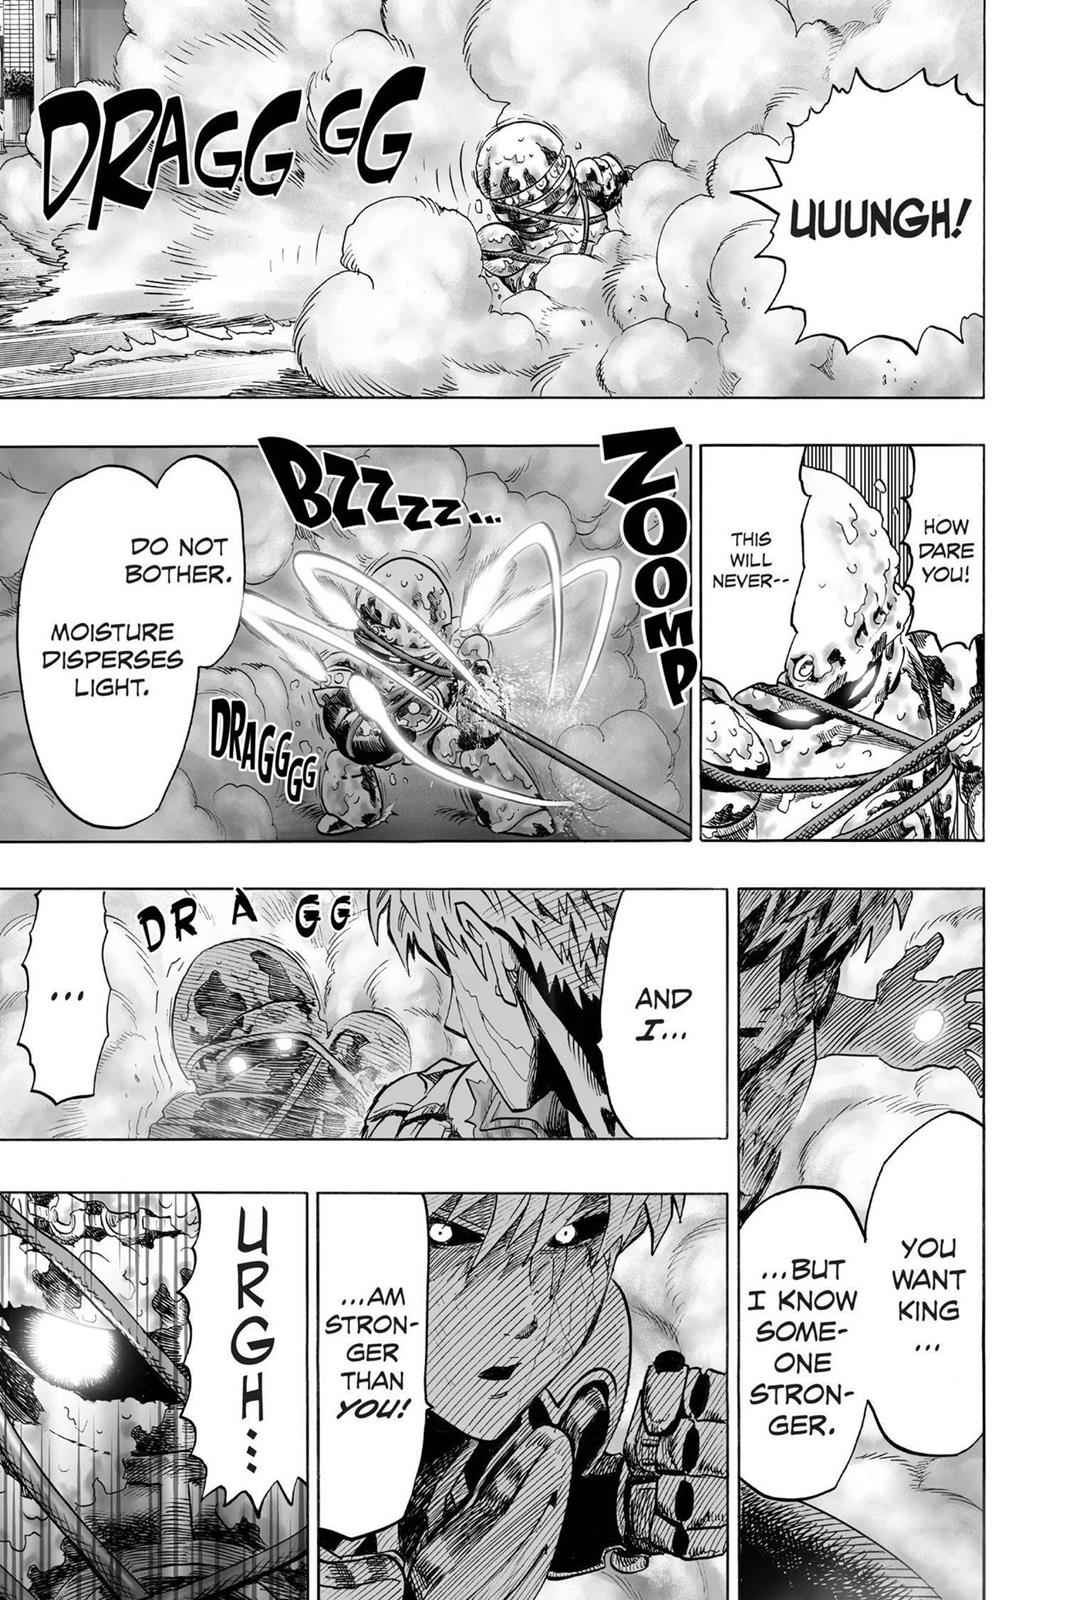 One-Punch Man Chapter 38 Page 78